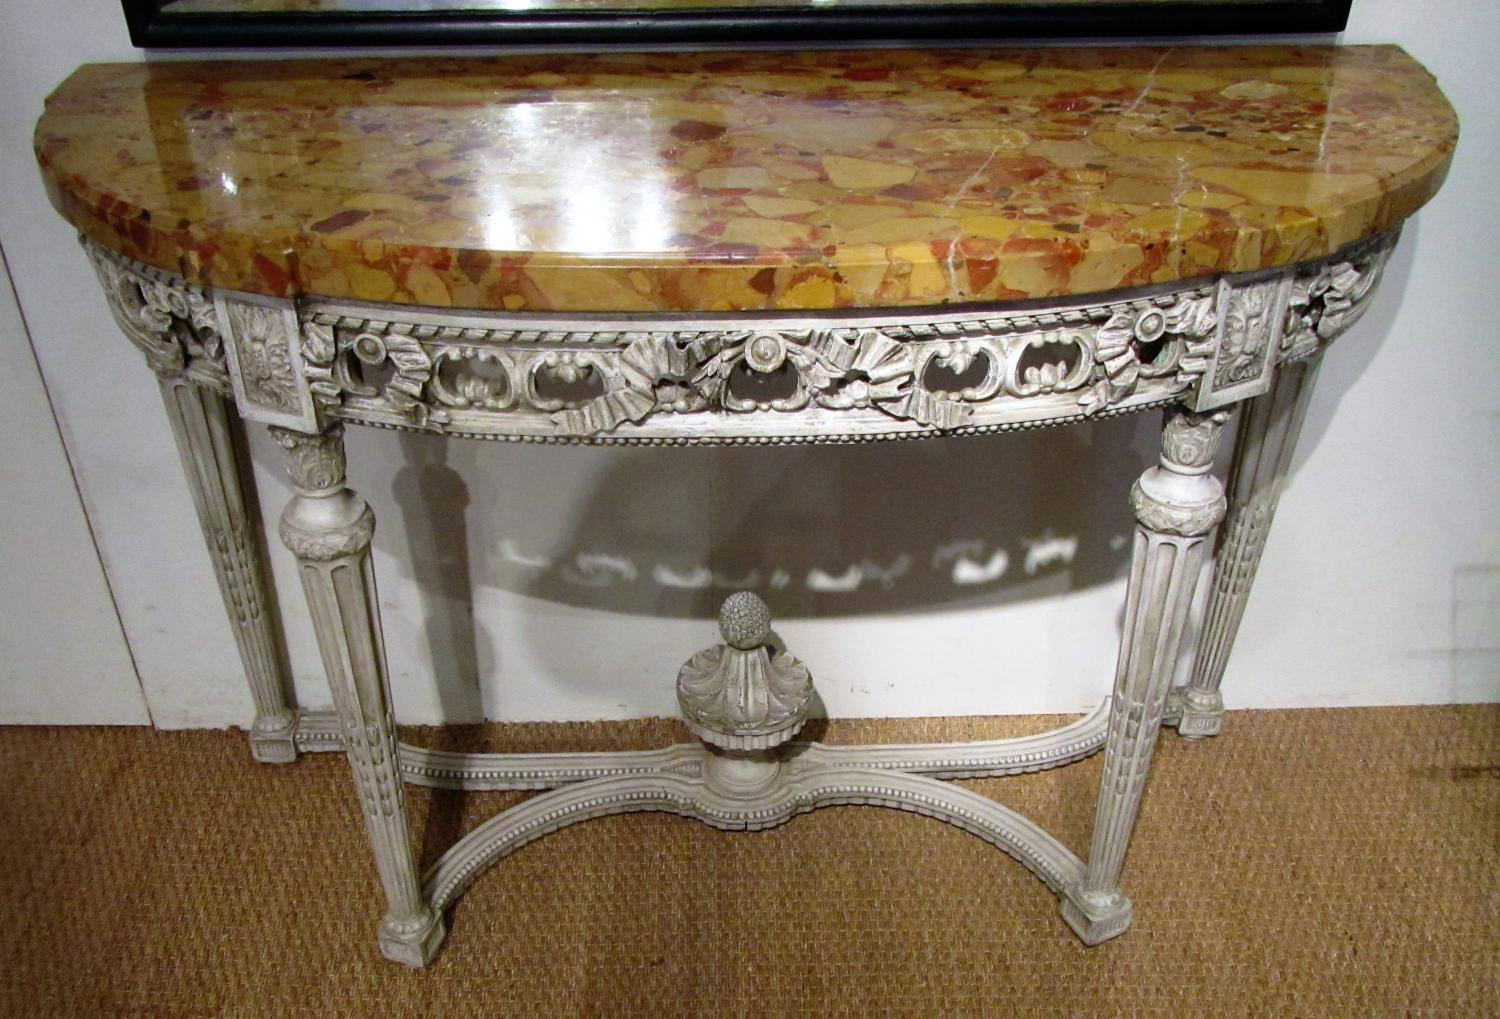 A 19thC French painted wood console table